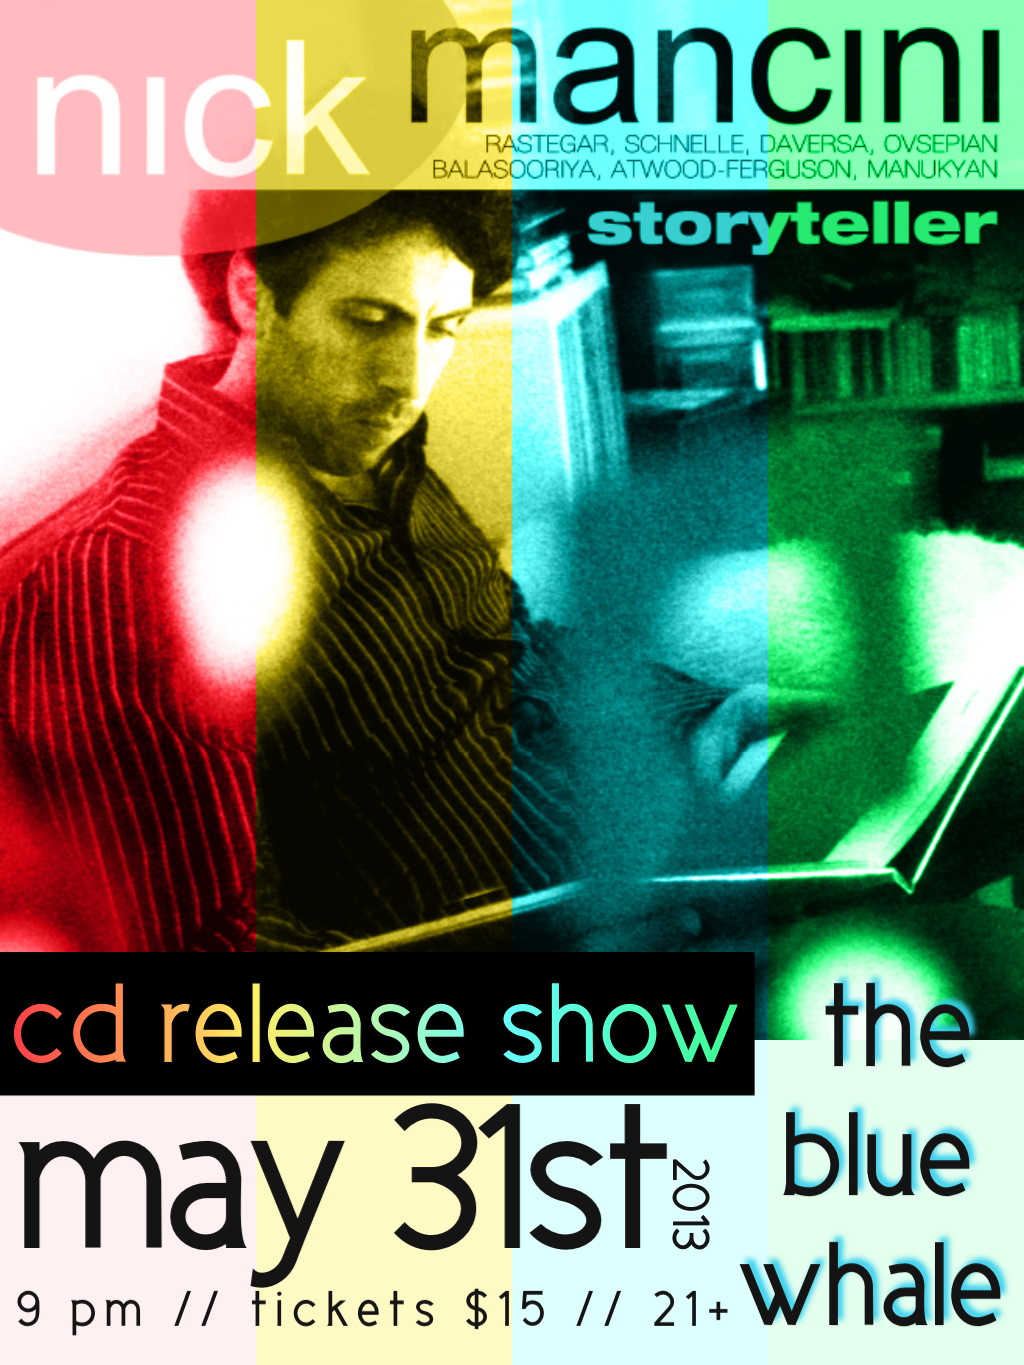 "So,   Nick  , my guy, has been working tirelessly on his new album, ""storyteller"" for the last few months and it is ready to be released!     This has been such a cool project to watch grow.     From hearing some of these songs being written in our   living room or seeing charts of them lying around, to hearing them in their infancy being played live like having life-air being blown into them….  From watching rehearsals and hearing phone conversations with contributing musicians and engineers, to watching the whole record take shape in the studio….  From talking about the concept of ""Storyteller"" and it's significance to who Nick is as a person and artist, to hearing friends and listeners make eerily fitting reviews correlating to the original concept…. From watching the album art and design be created, to making this poster for his CD release show….  ….it's been truly inspiring and it really, really feels magical. Sure, I may be biased…. but, trust me. I haven't been this excited about an album in a while.   The whole album is made up of original compositions by Nick, barring one song, ""Day 366"" by Hermeto Pascoal. Each song telling a story, a mood, a time, a feel.  They are soundscapes, really. Cinematic songs, yes SONGS, while honoring jazz sonorities.   On May 31st, at the Blue Whale in Little Tokyo in DTLA, the album will be released at a show performed by Nick and his band which includes,  Dan Schnelle  on drums,  John Daversa  on trumpet  Vardan Ovsepian  on piano, & Hamilton Price  on bass.   9p, $15.   It's oh so exciting.  Hope you can make it!    https://www.facebook.com/events/232830156841732/       http://nickmancini.net.com/"